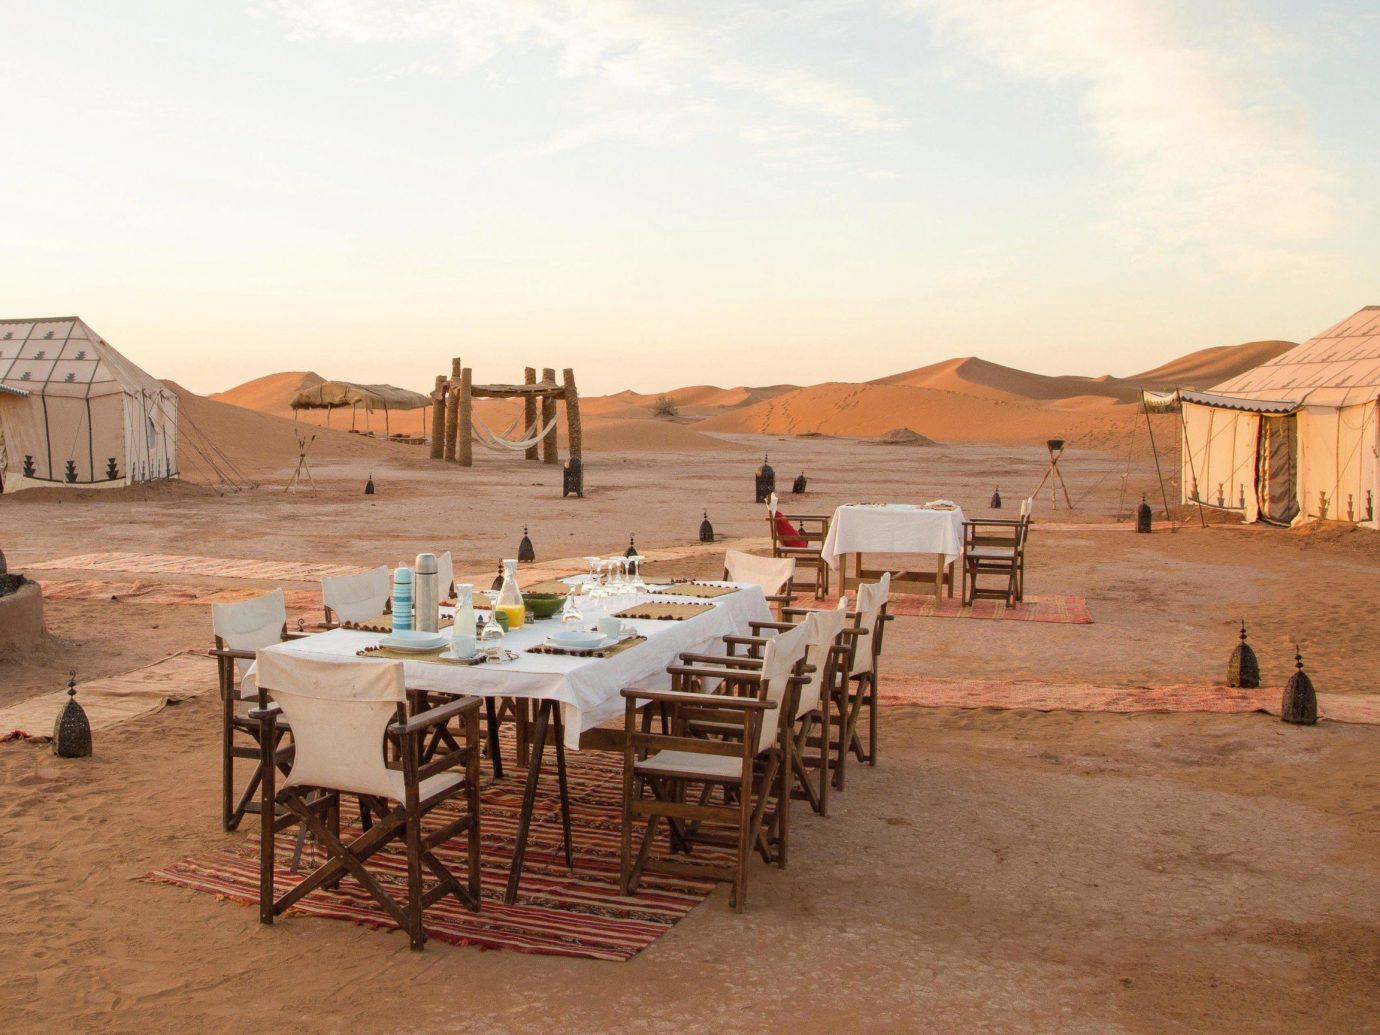 Trip Ideas ground sky outdoor property natural environment sahara Desert aeolian landform landscape wadi hacienda estate ancient history Village sand several shore sandy